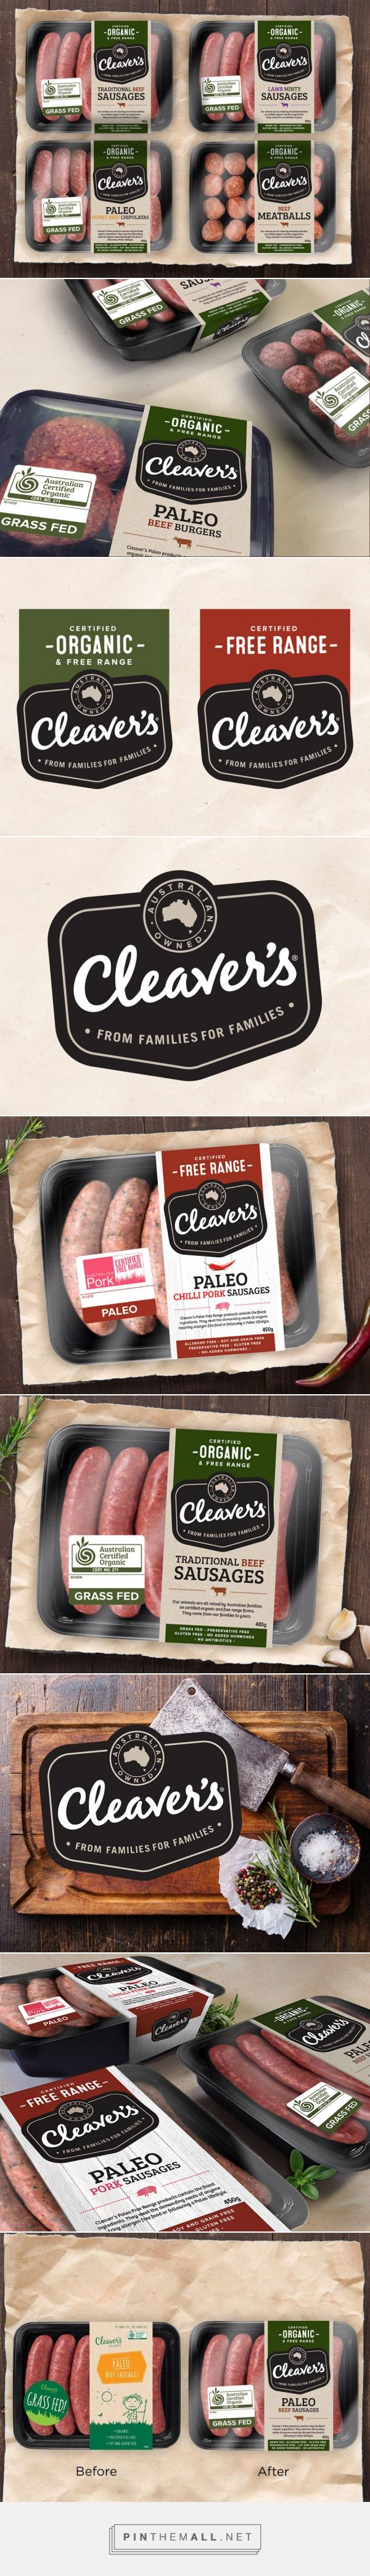 Cleaver's - Packaging of the World - Creative Package Design Gallery - http://www.packagingoftheworld.com/2016/05/cleavers.html